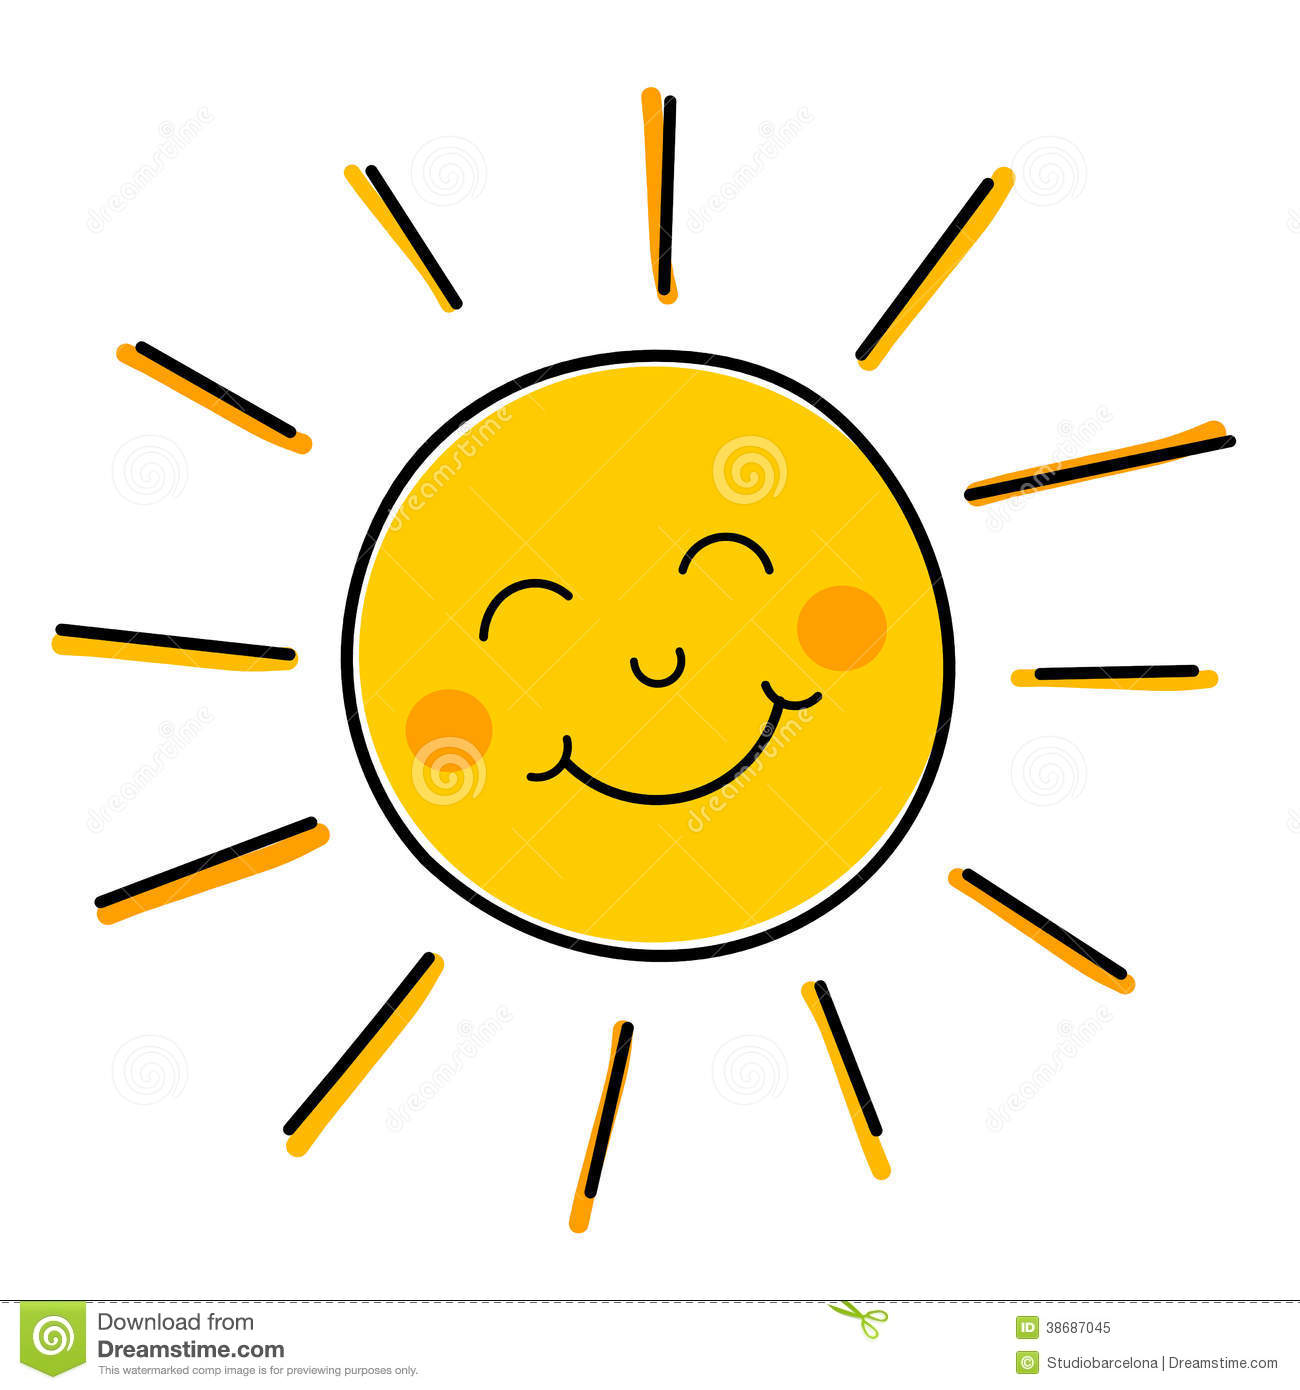 Smiling Sun Vector Royalty Free Stock Photo - Image: 38687045